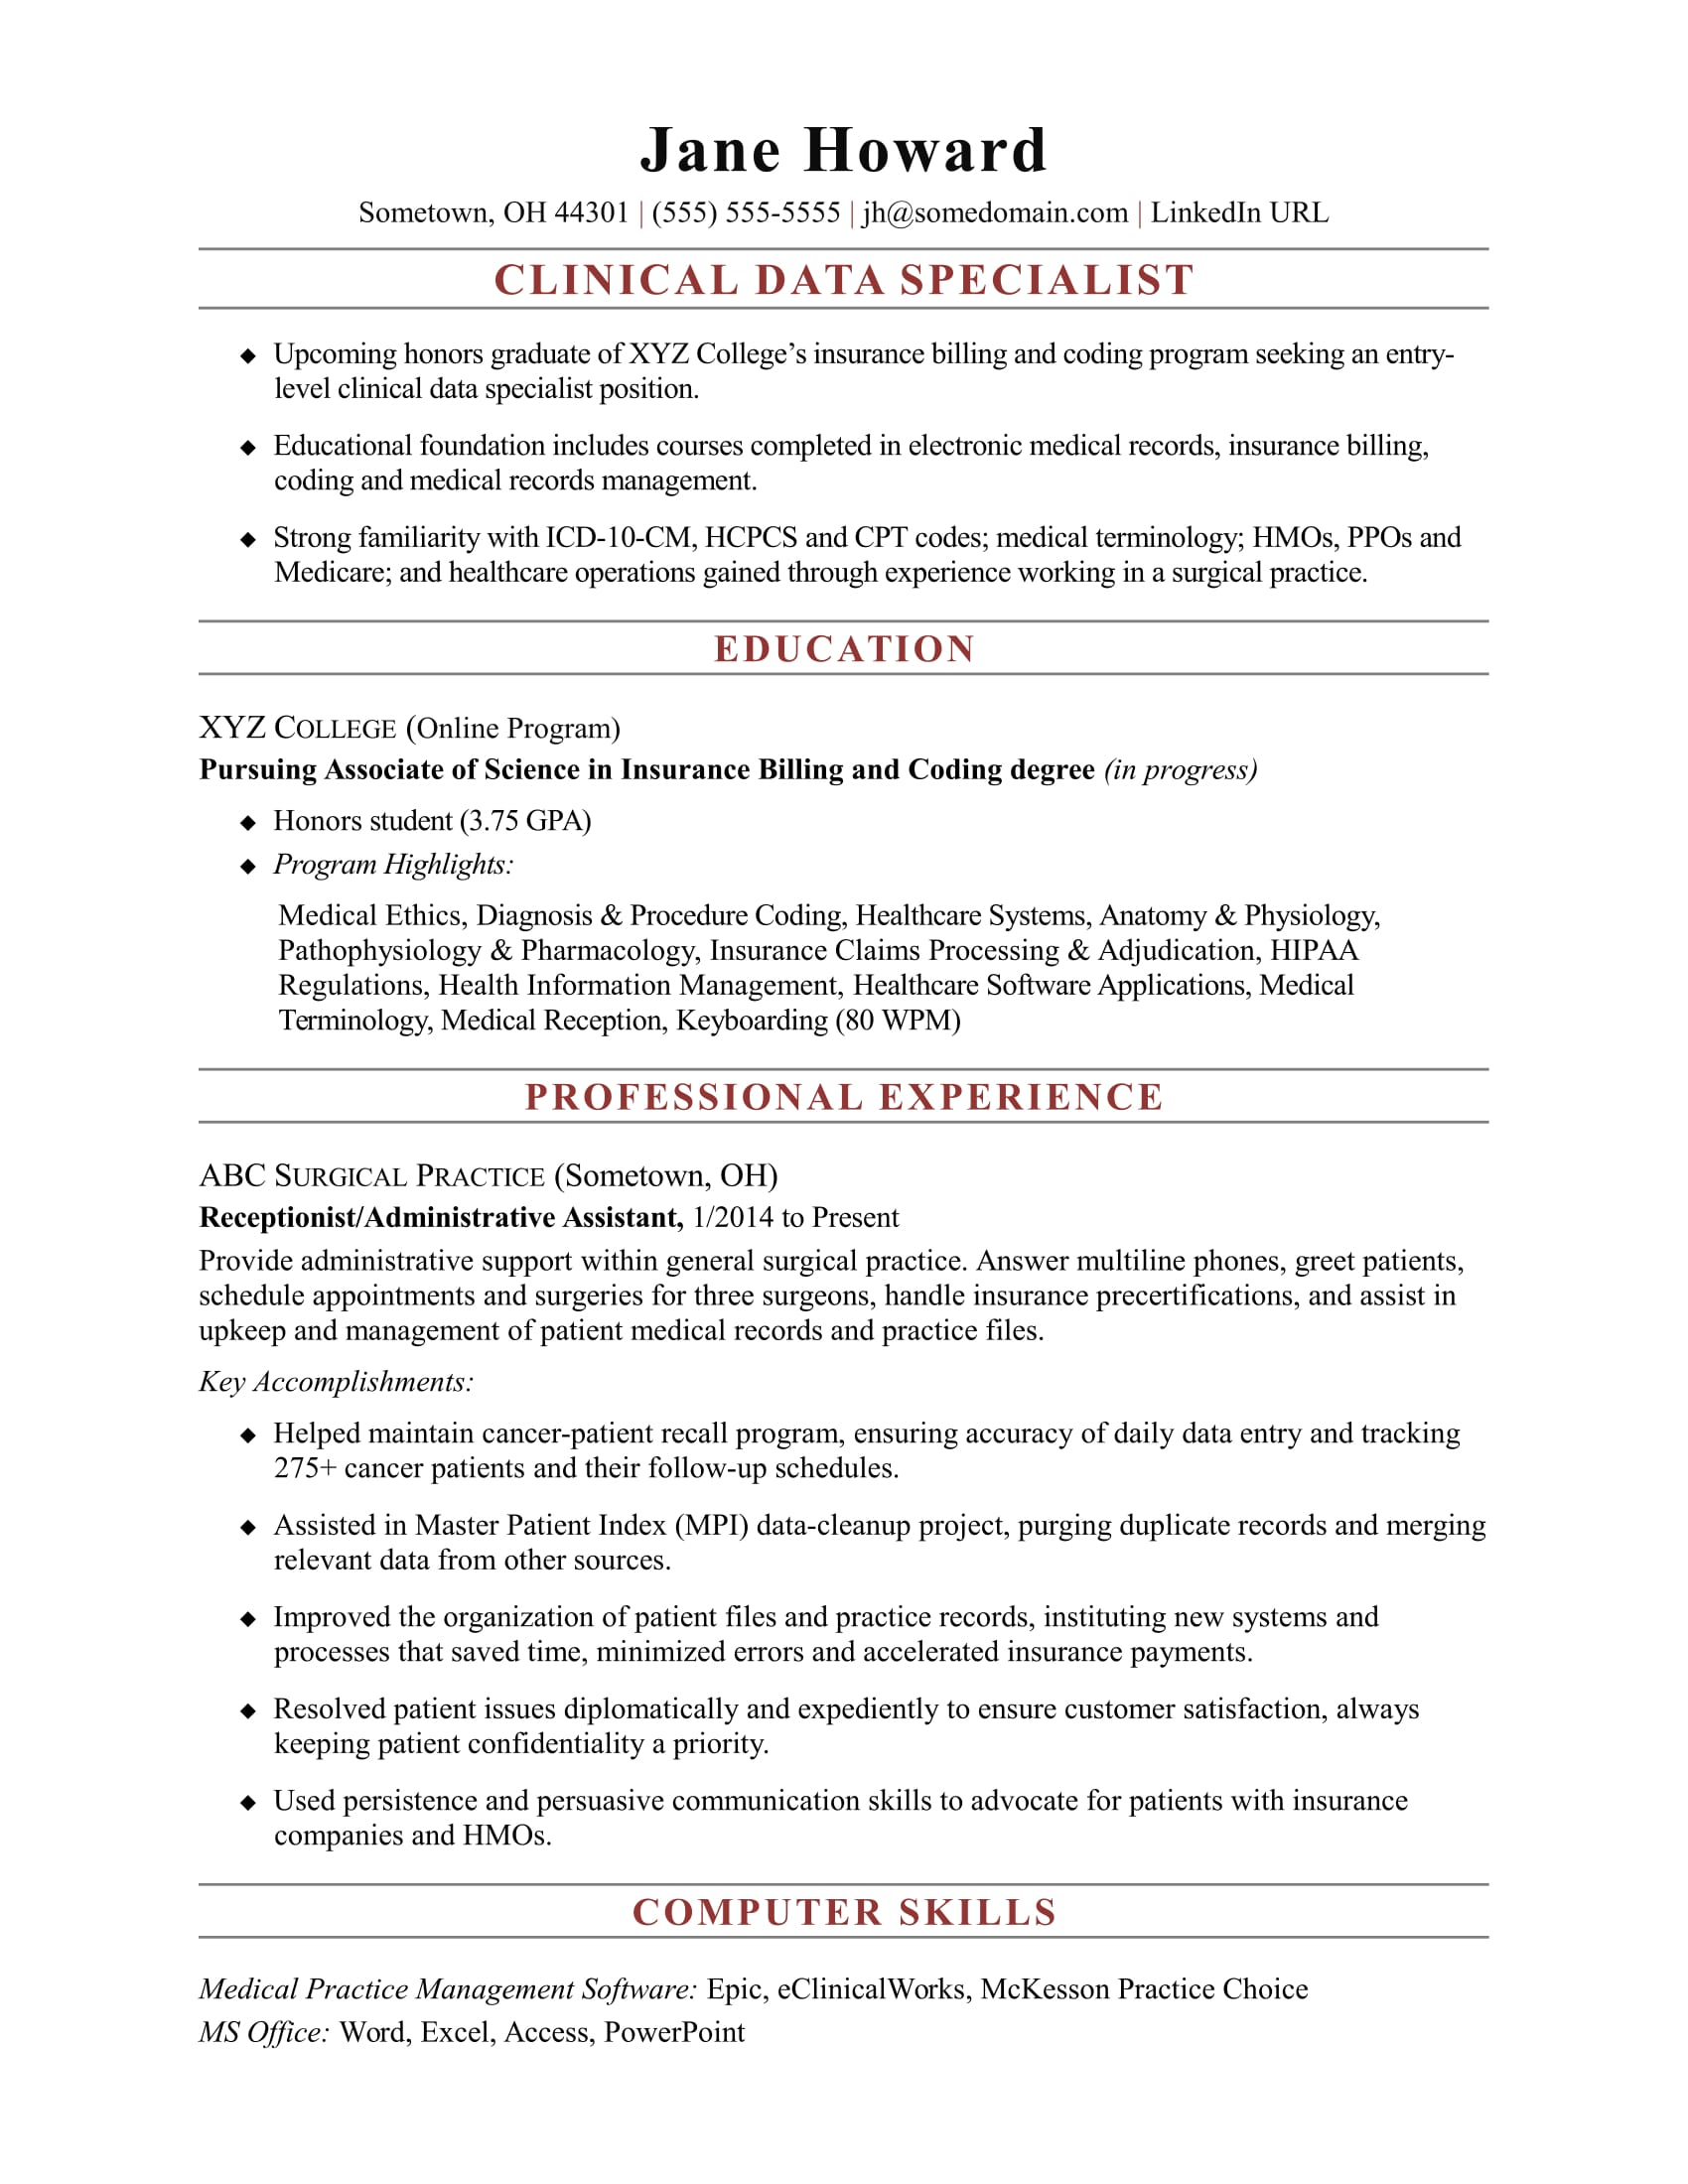 Sample Resume for an Entry-Level Clinical Data Specialist